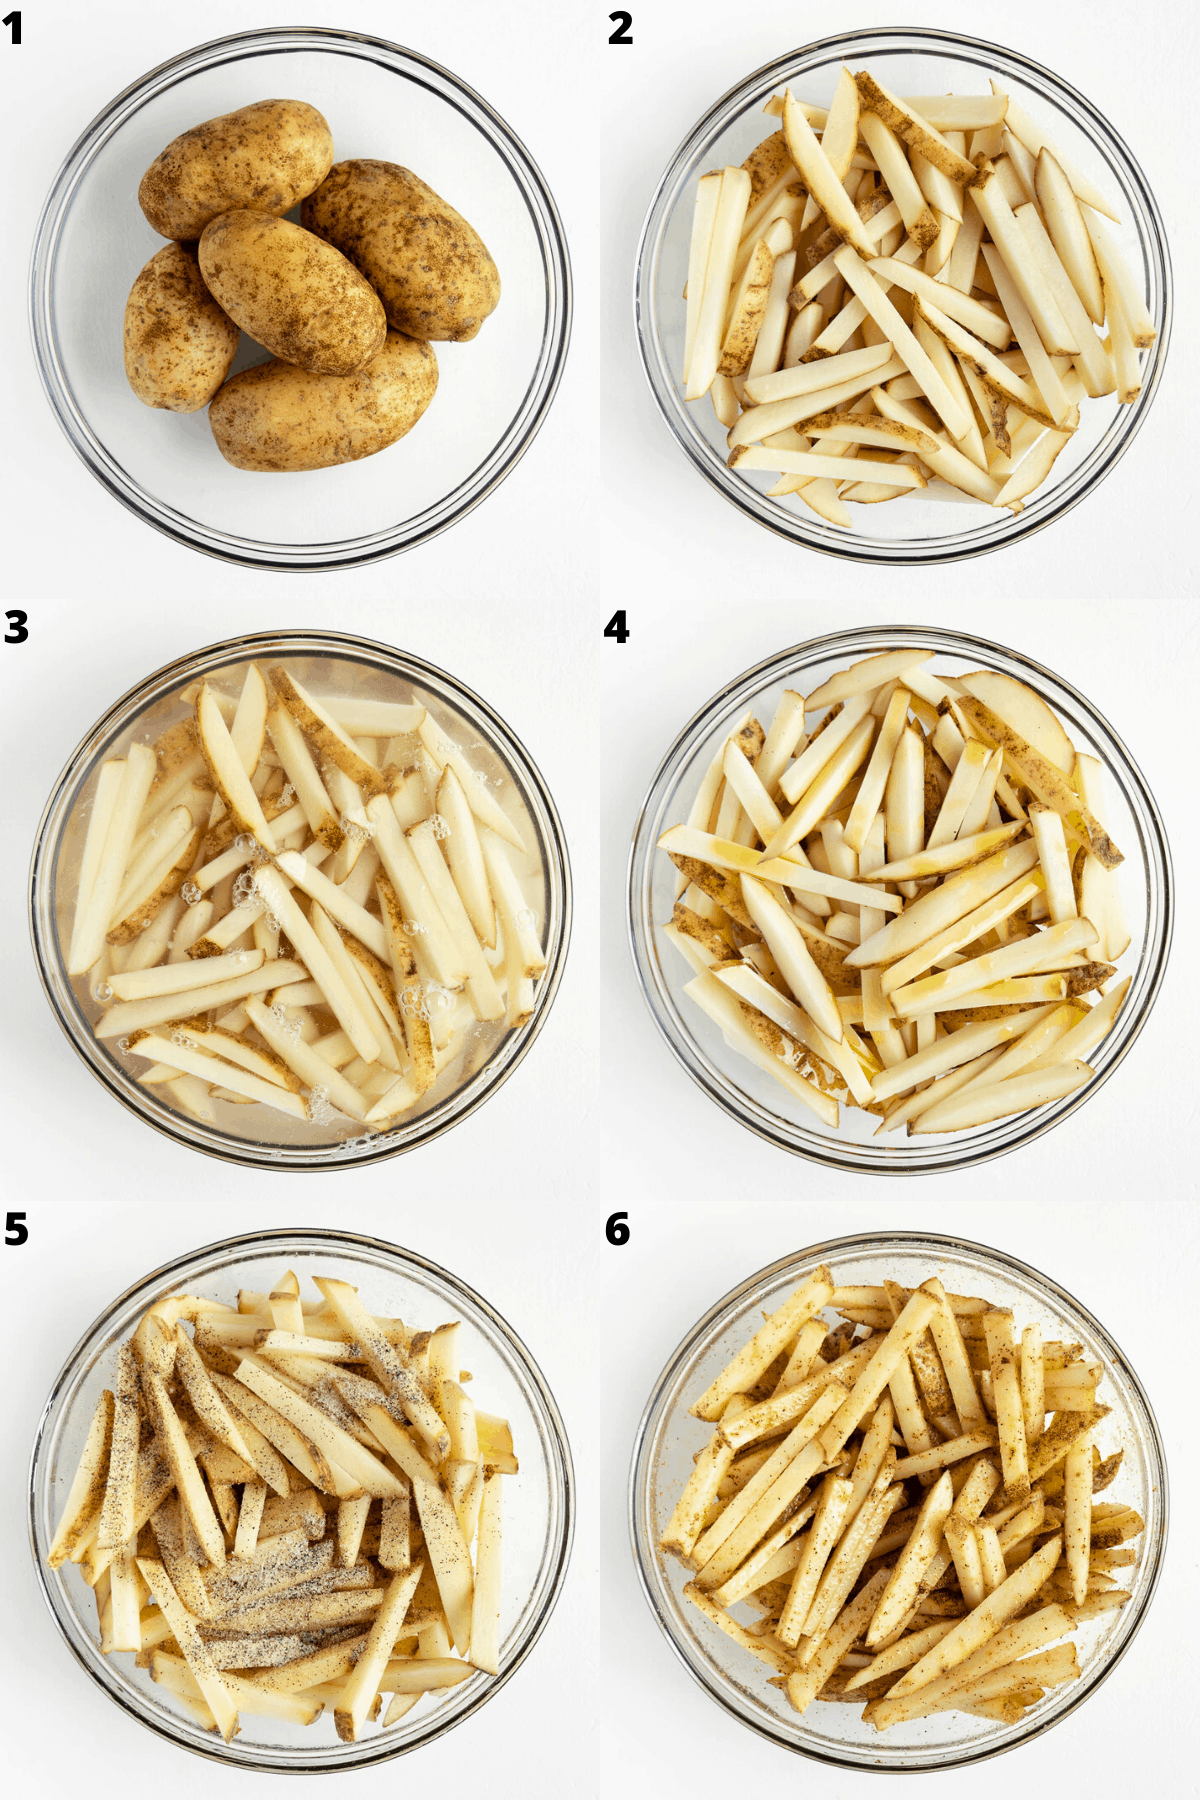 a six image collage preparing french fries step-by-step in a glass bowl